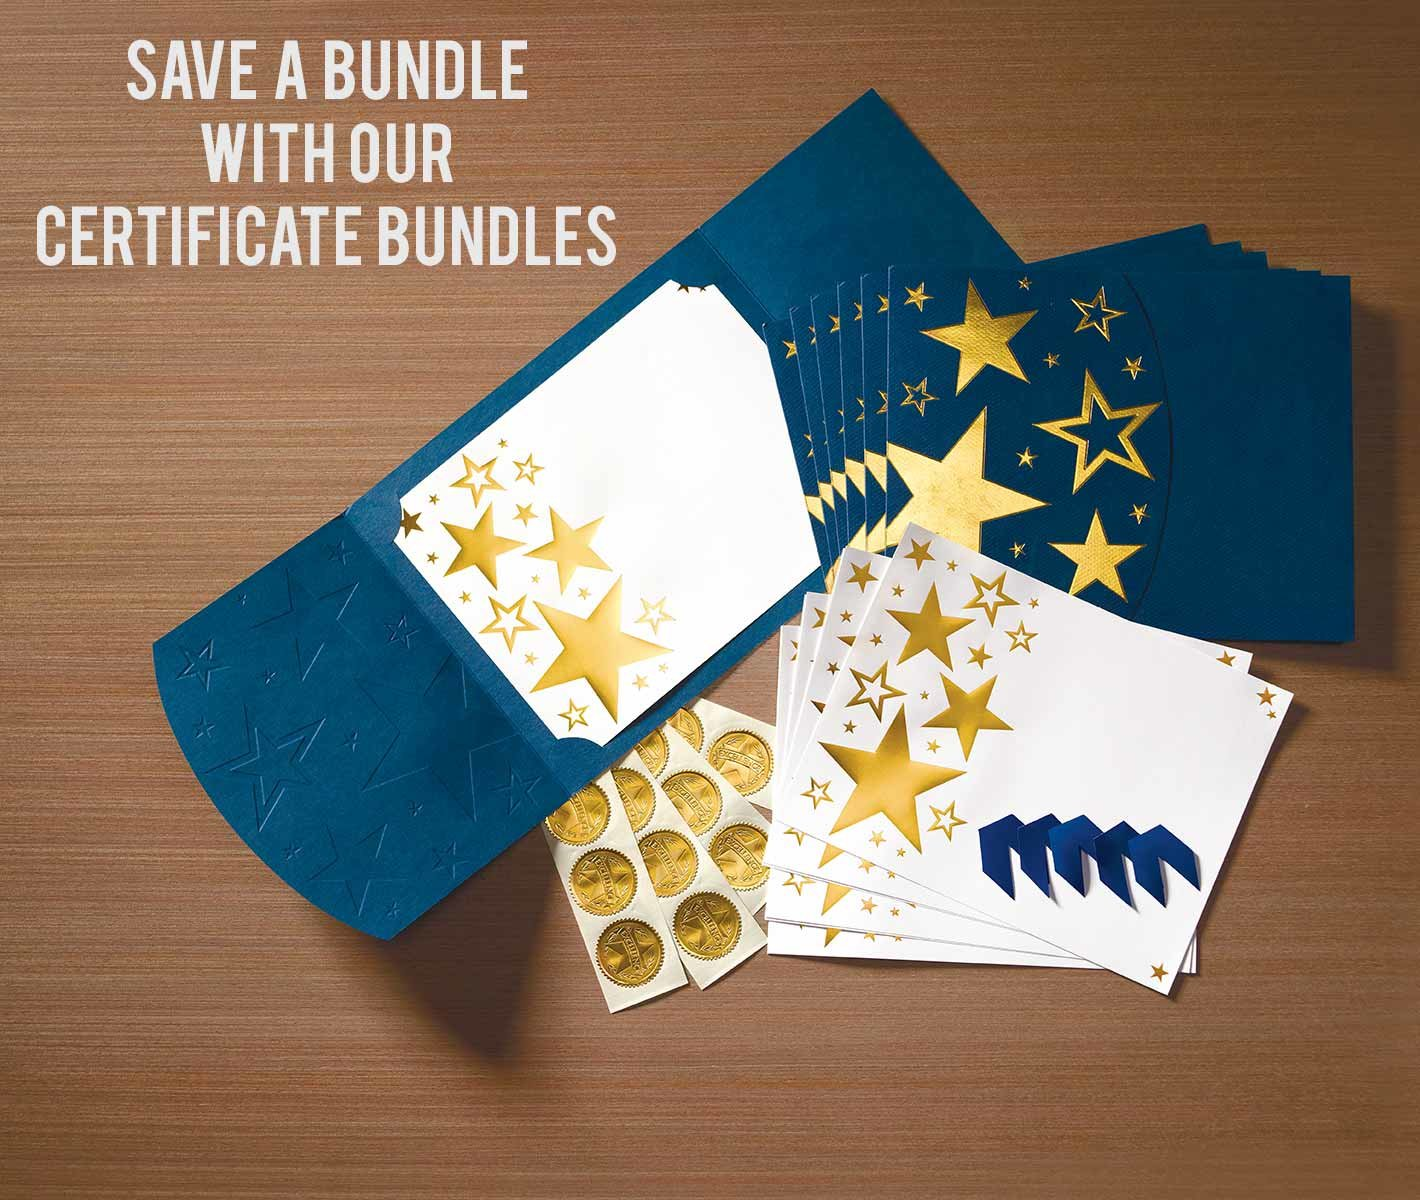 Save with our Certificate Bundles